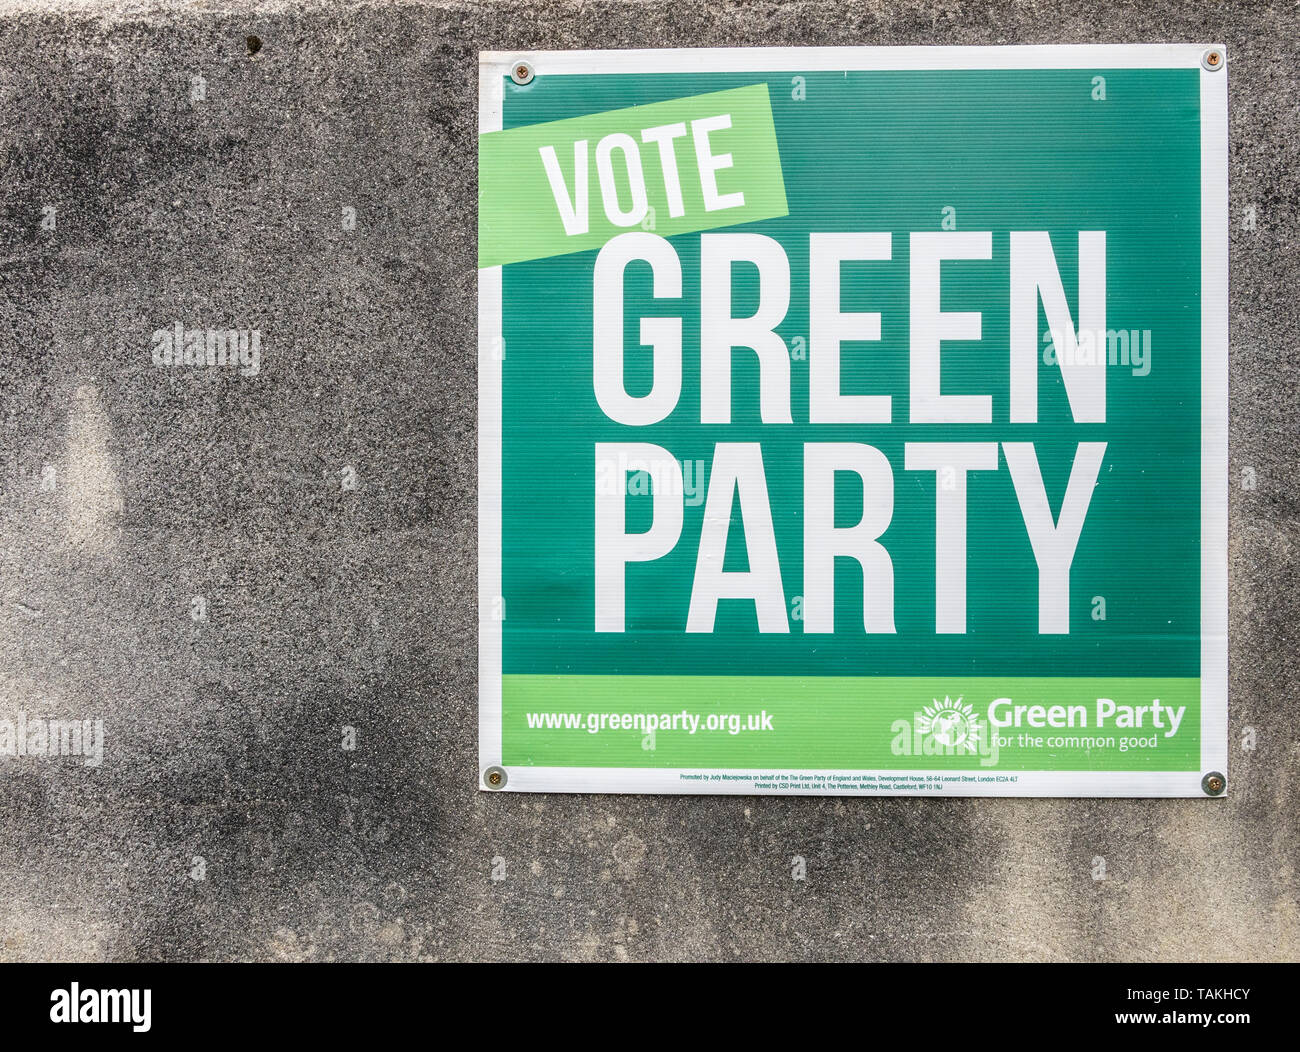 Green Party election poster for 2019 European parliament elections. - Stock Image